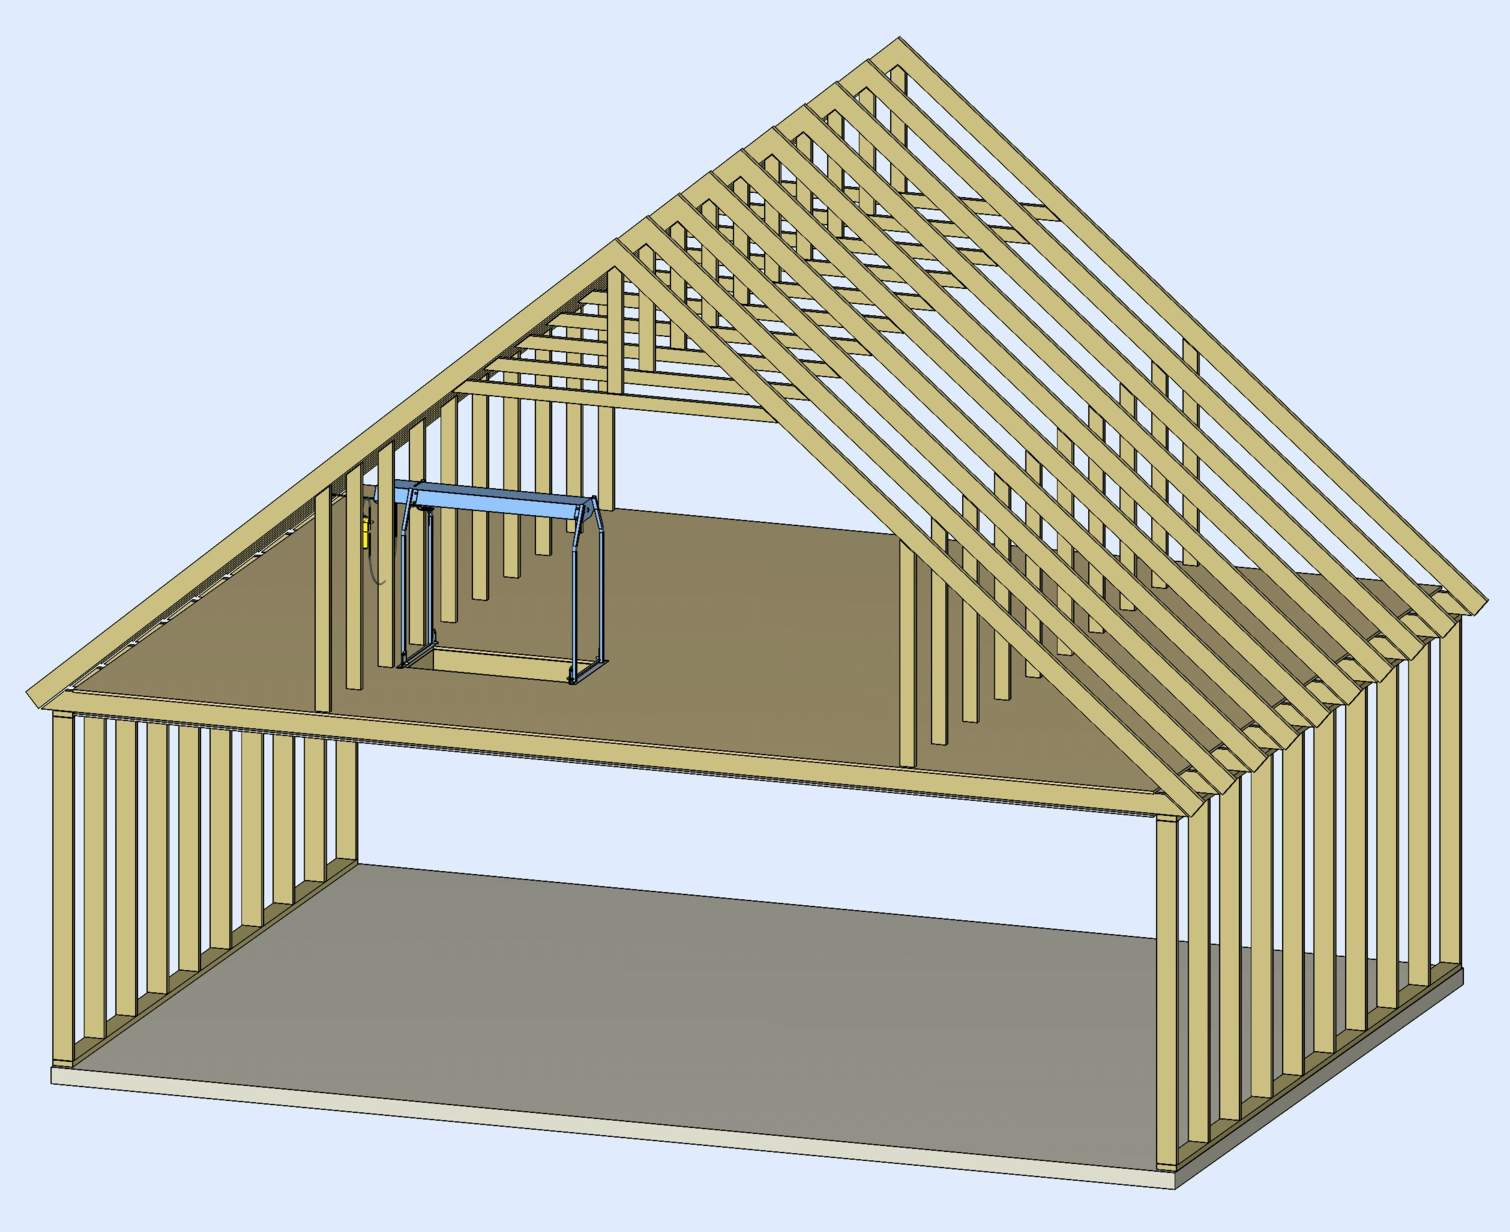 Attic roof truss design calculator attic ideas for Roof truss cost